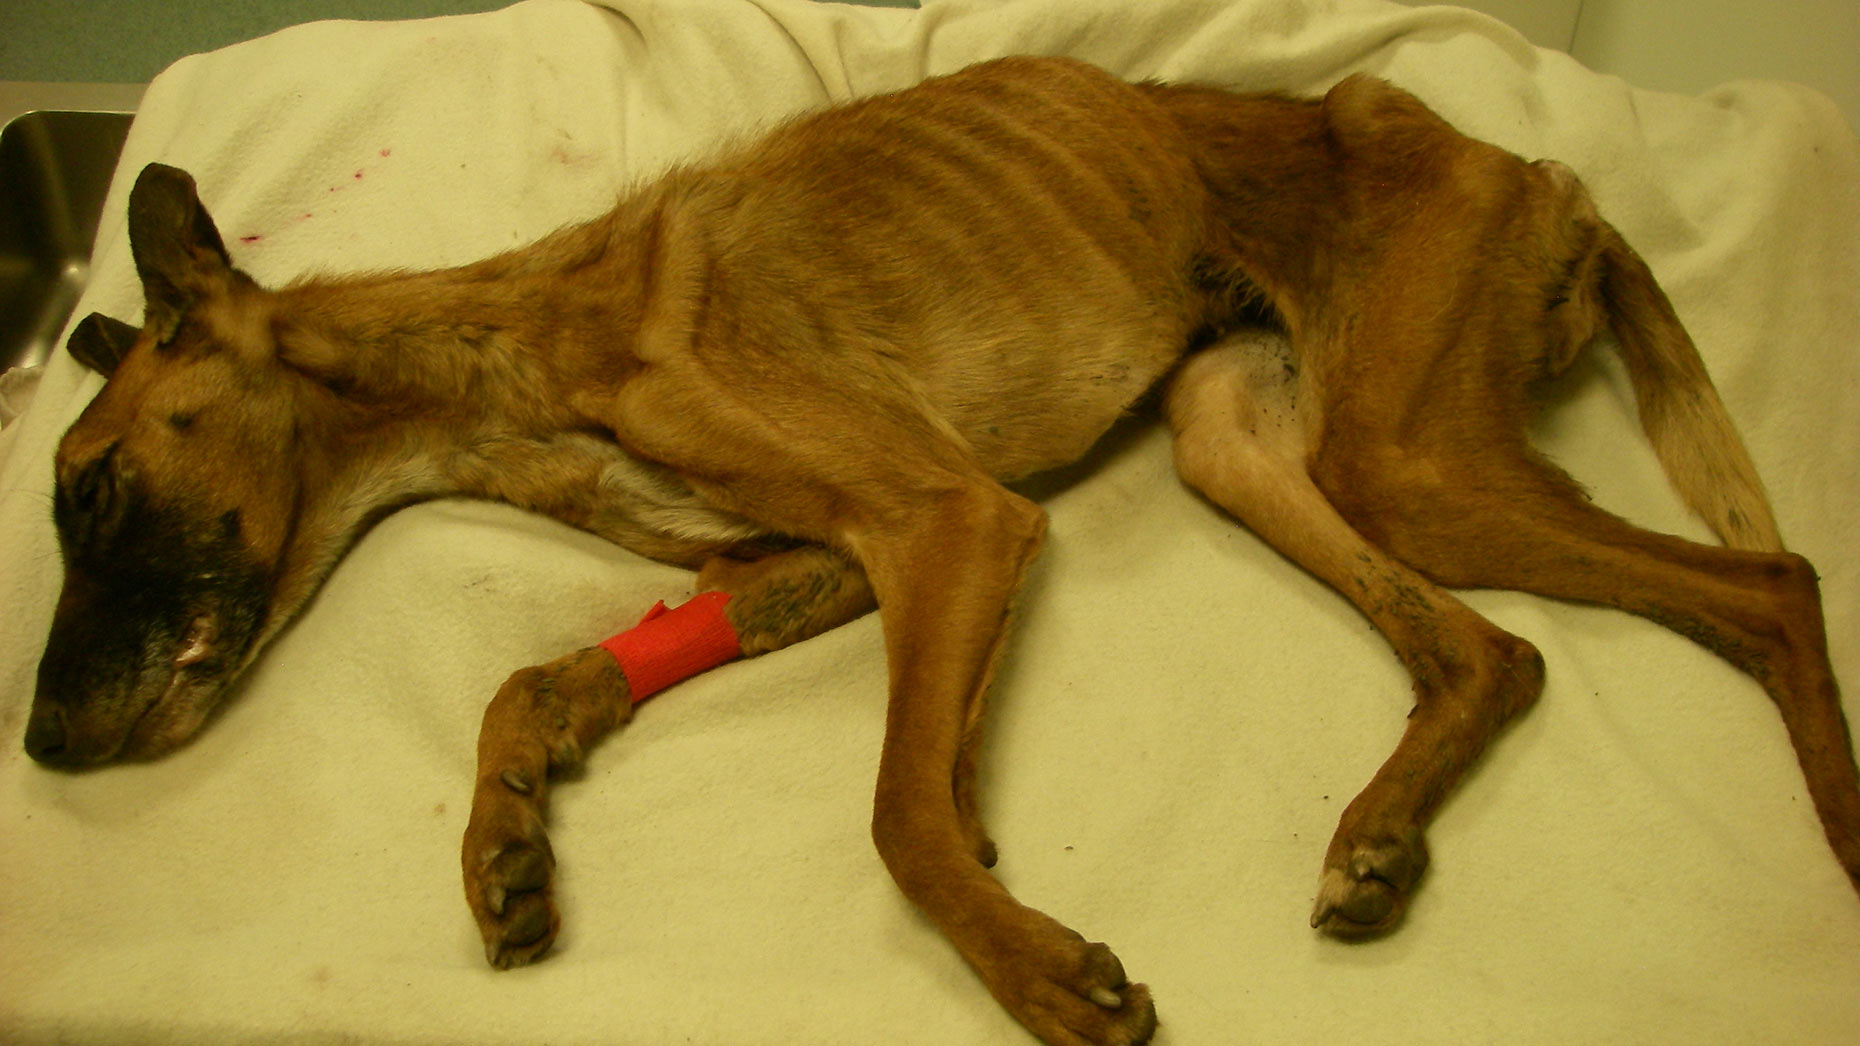 Queenie only weighted 7.5 kilos when she was put down. Photo: RSPCA